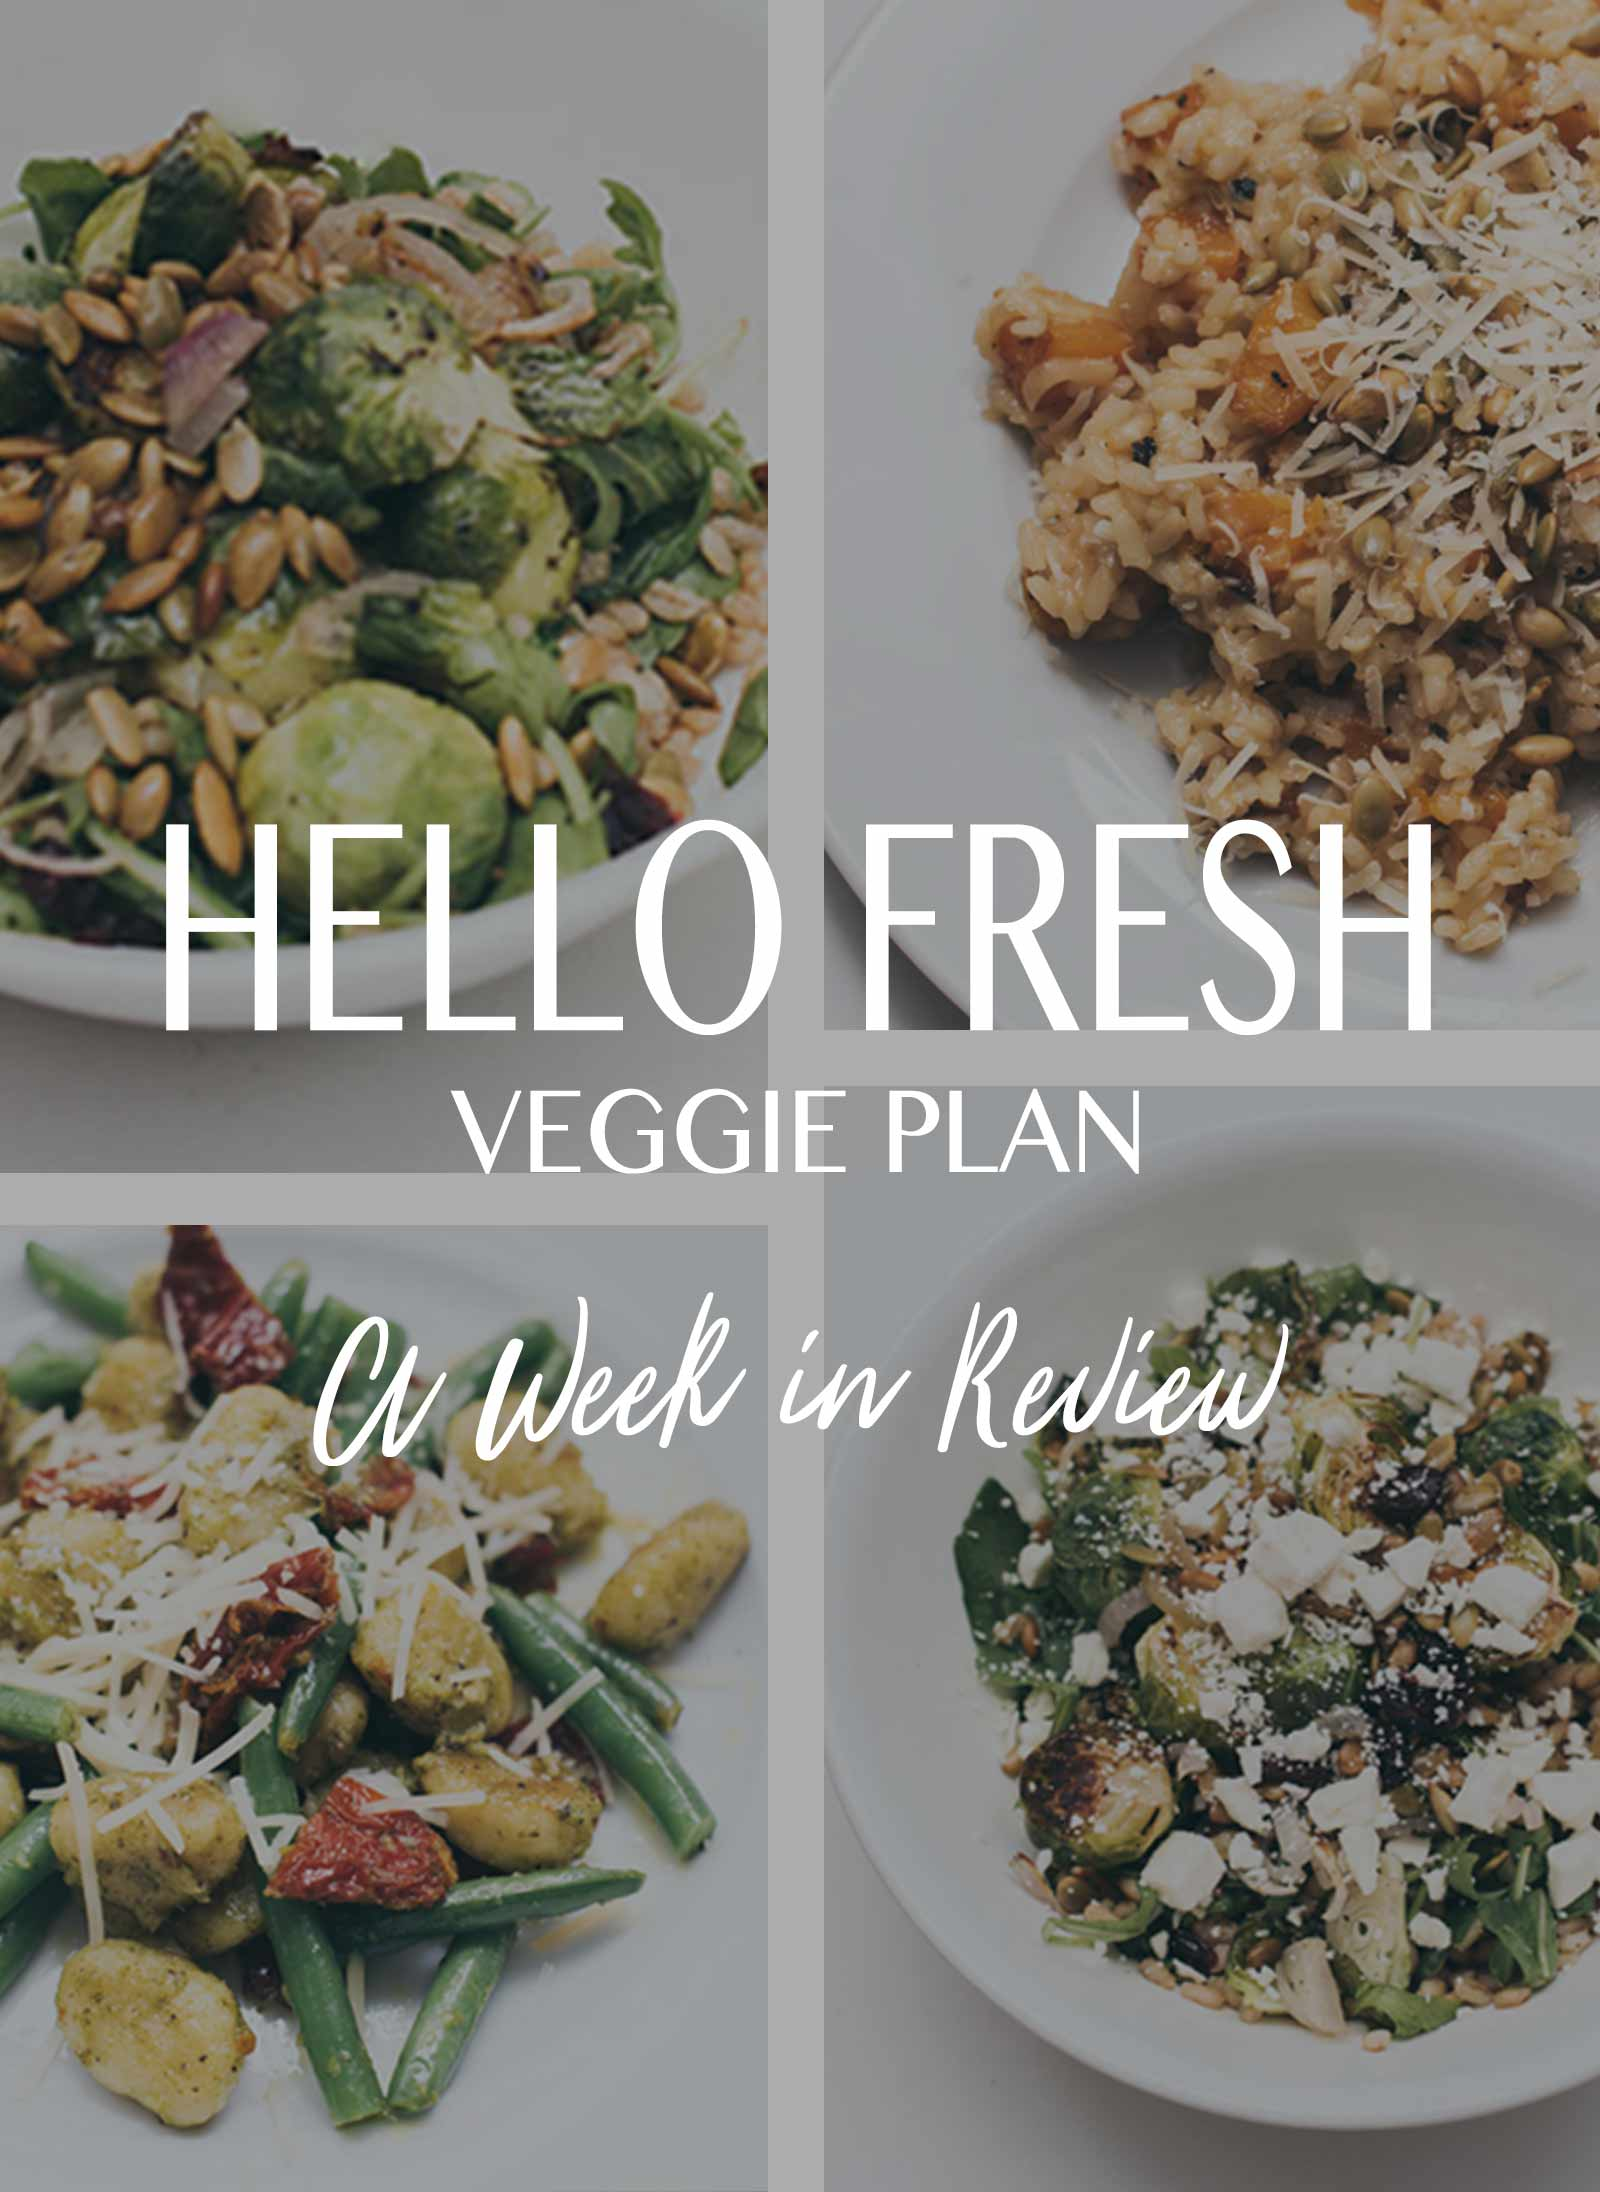 Meal Kit Delivery Service Hellofresh Giveaway Survey